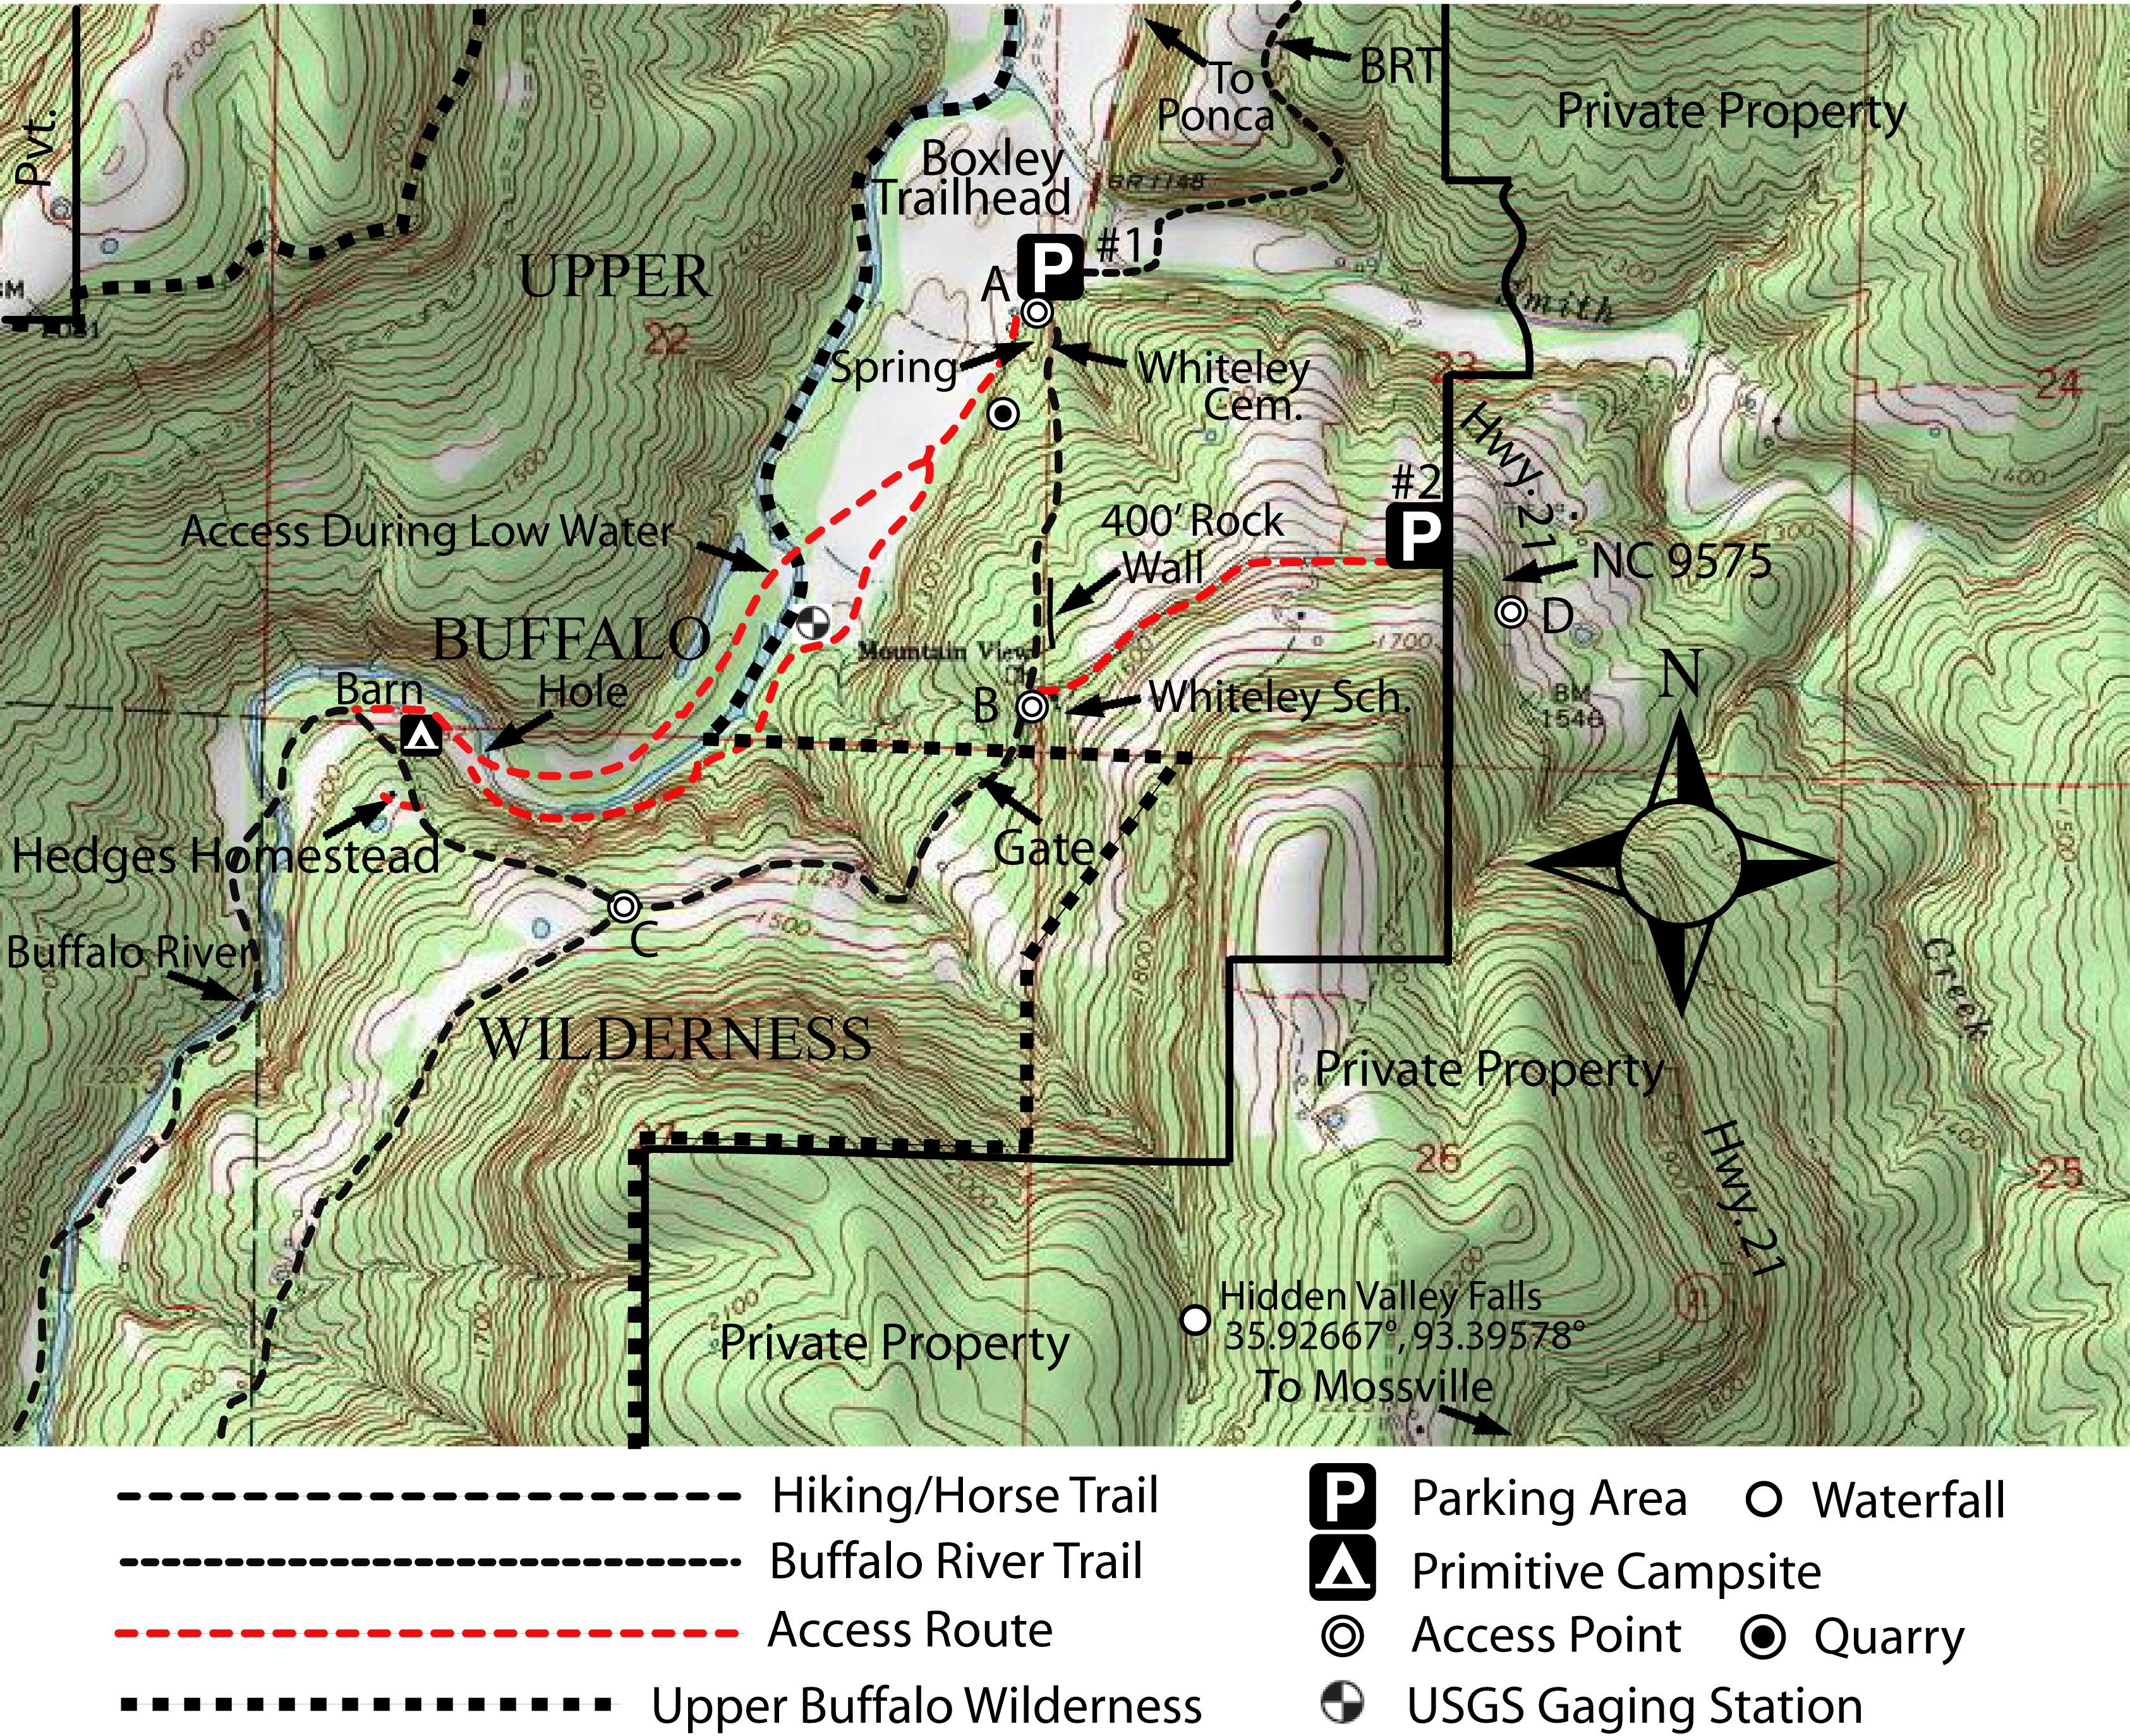 Boxley Valley Arkansas Map.Takahik River Valley Hikers